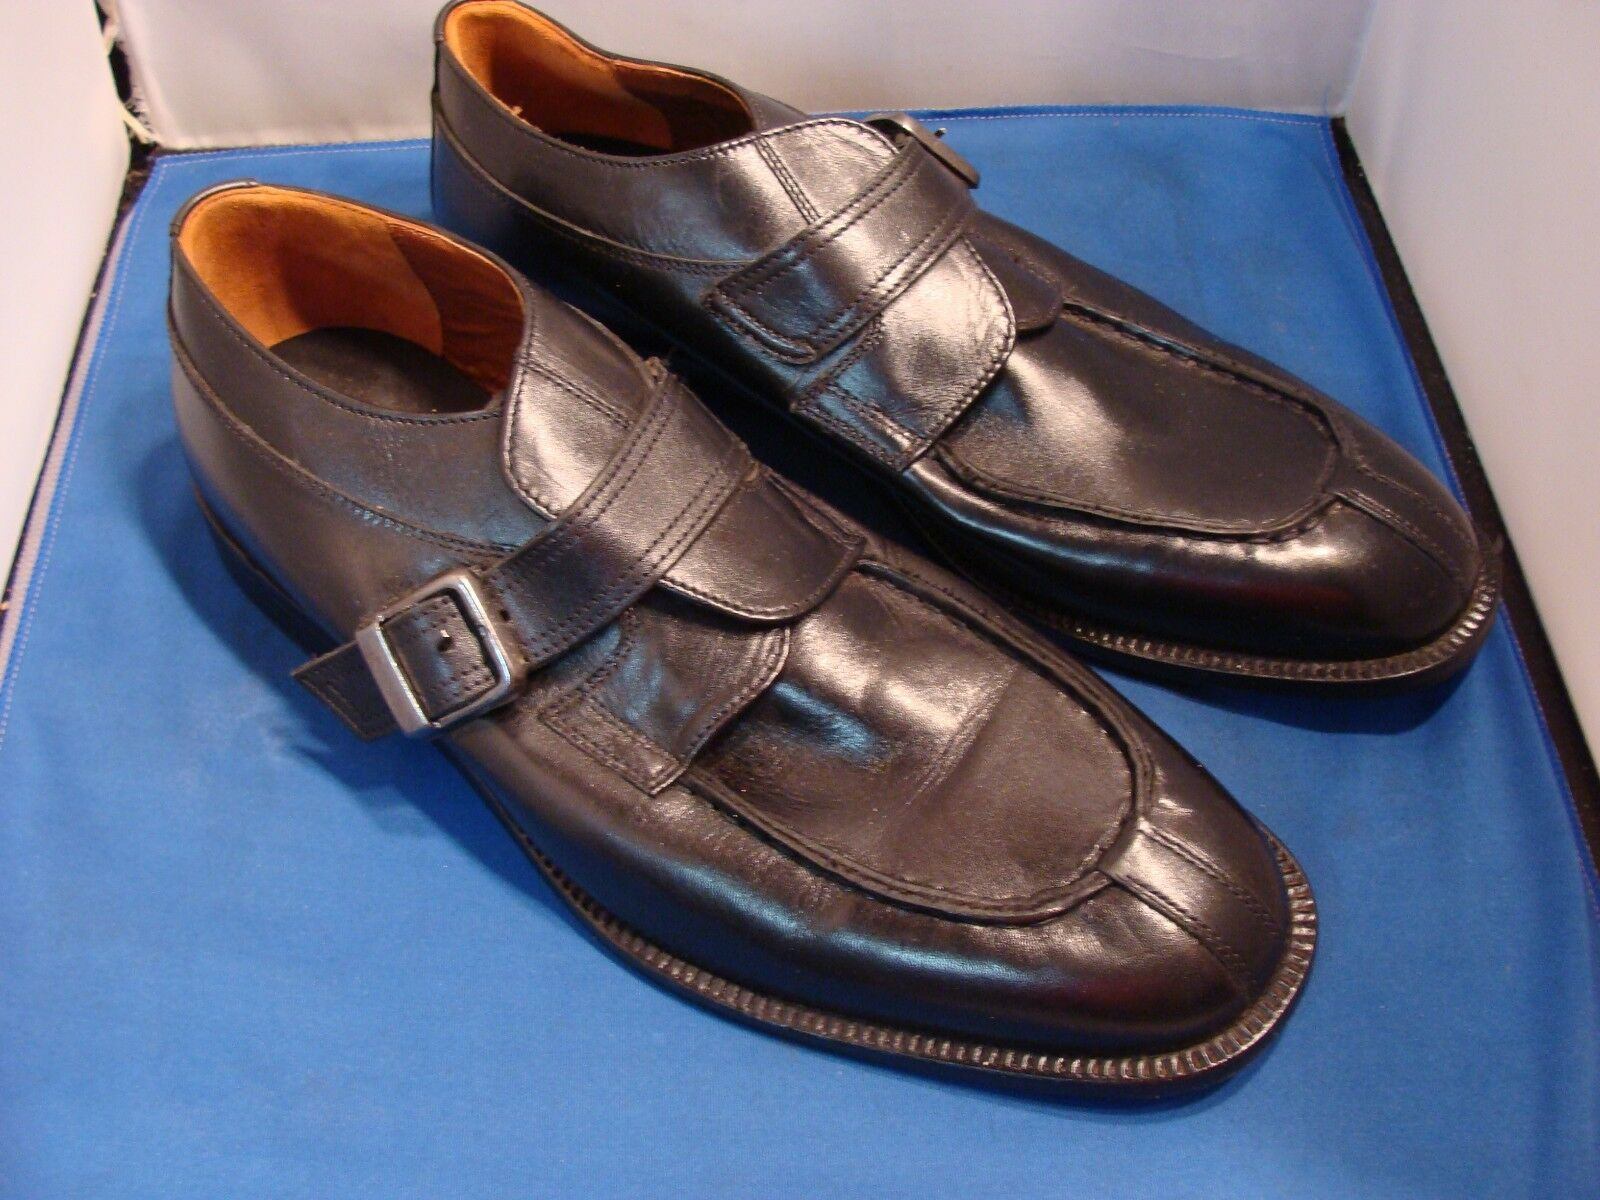 Handmade  - Italo Carlo Men's Buckle Strap Dress Leather shoes - Black - 11